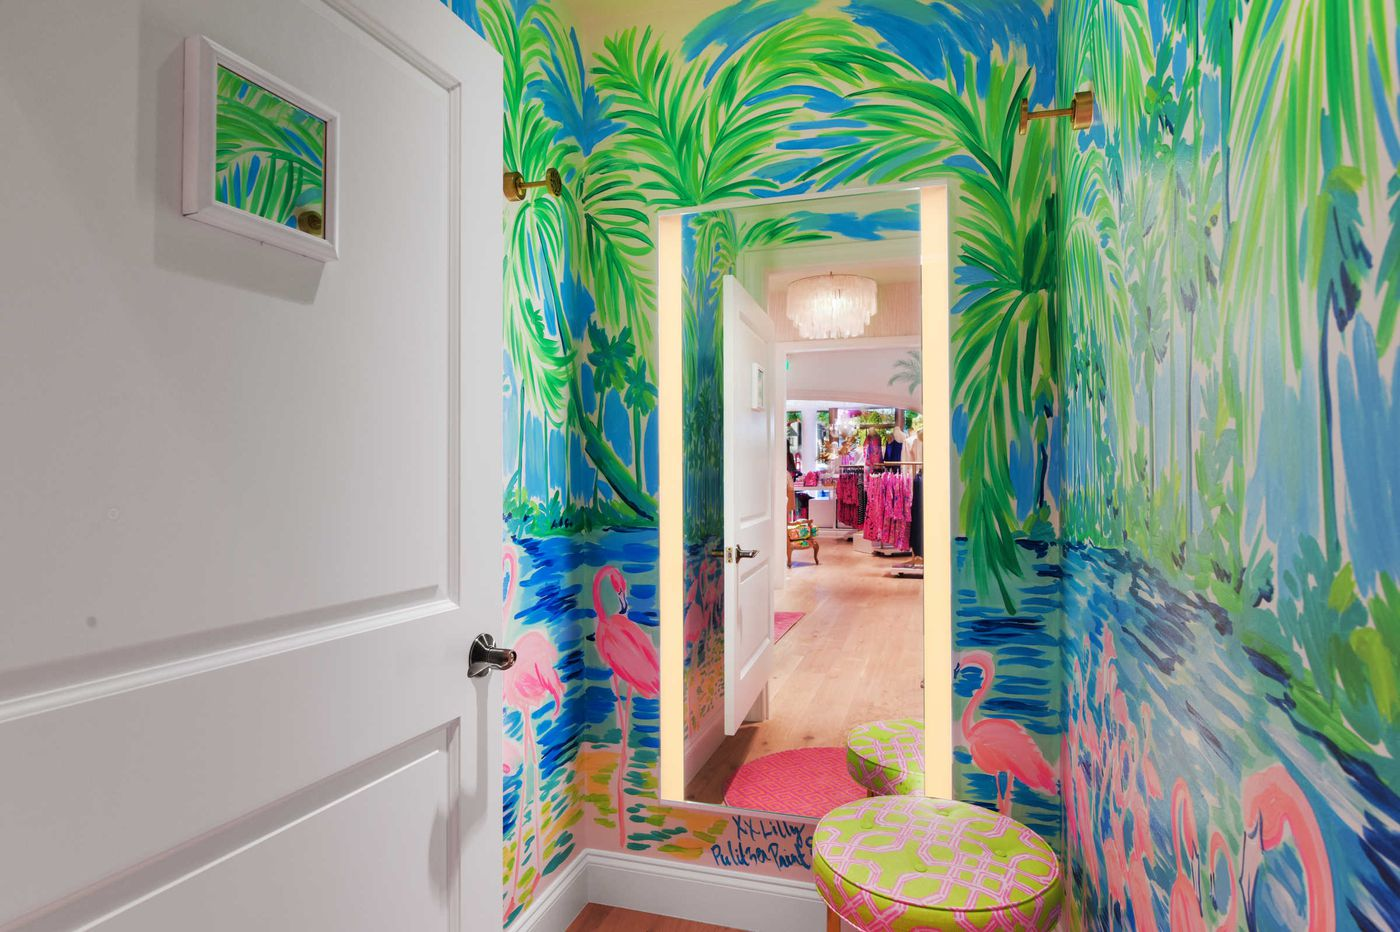 Lilly Pulitzer's first store on Jersey Shore hopes to make a splash in Avalon